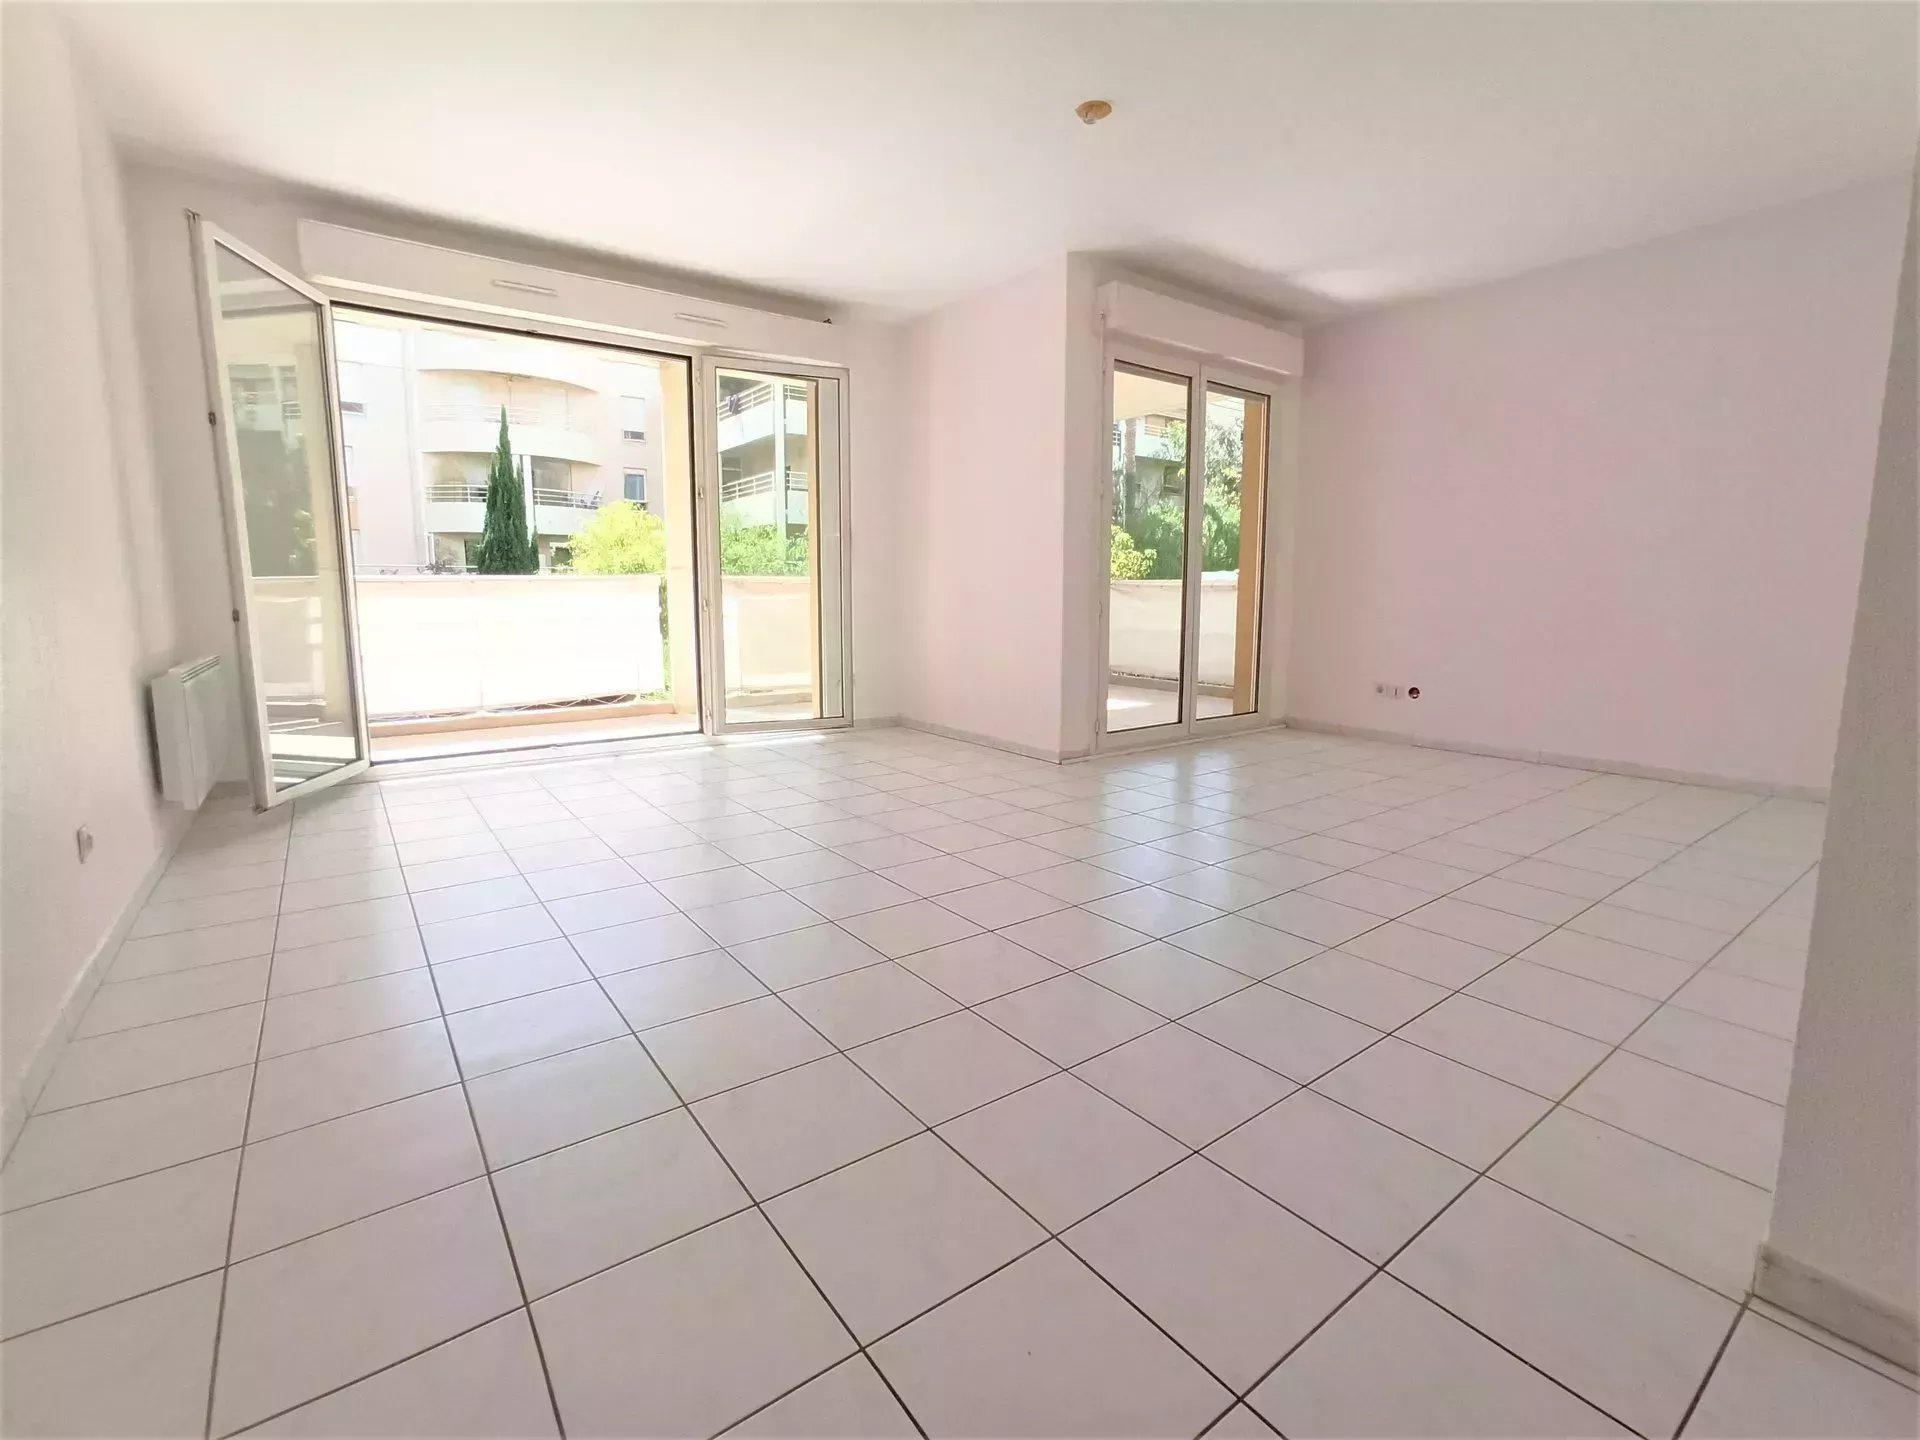 T3 63 m² Garage+Cave Terrasse Angle SUD OUEST